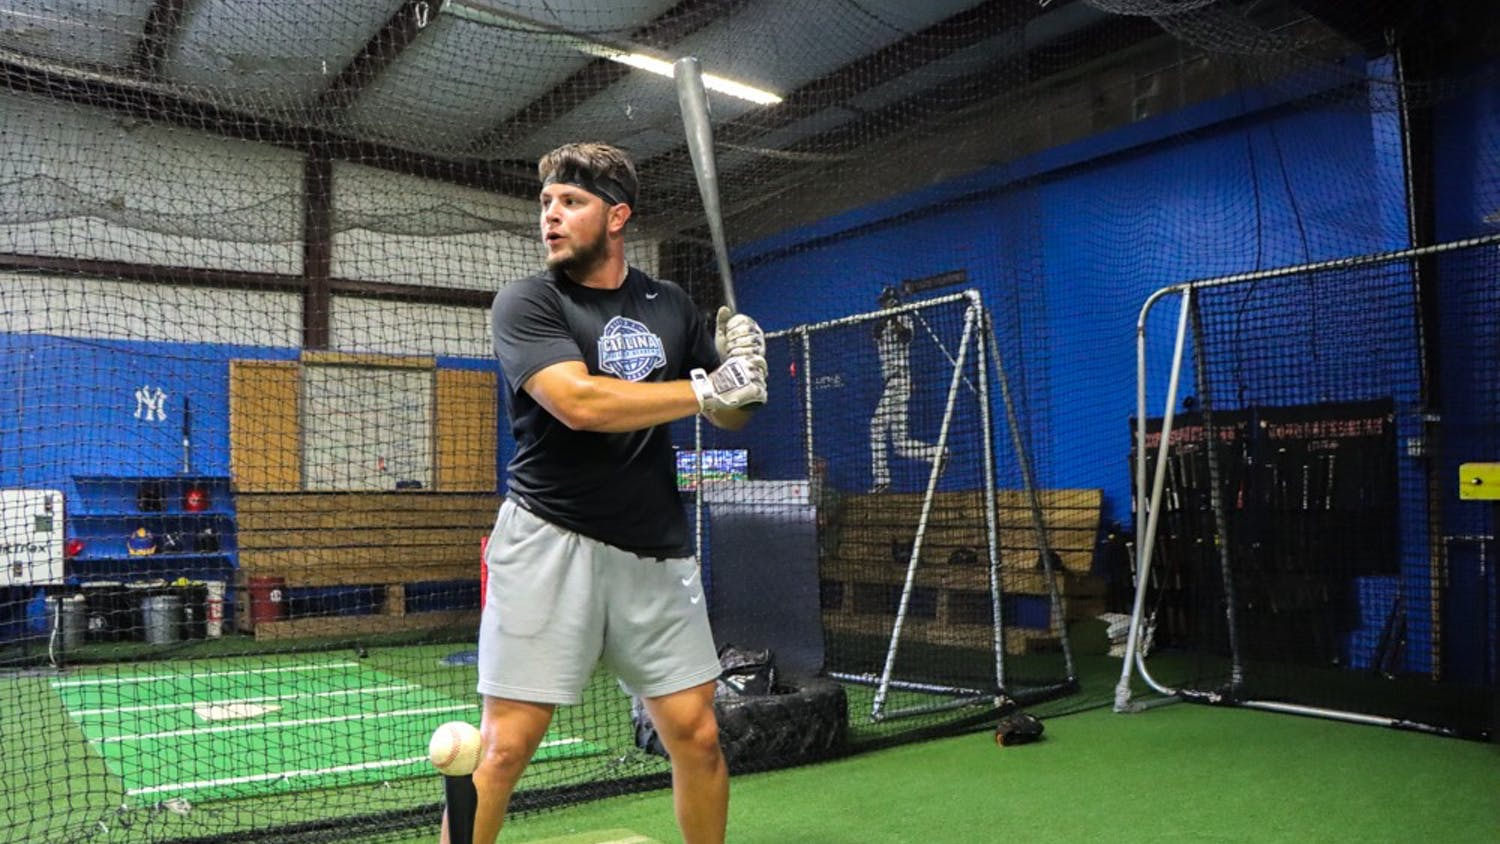 While the MLB adjusted their schedule to allow for games to continue during the COVID-19 pandemic, minor league games were cancelled. Now, minor league players are figuring out how to adjust and prepare for their next season. Photo courtesy of Josh Conner and UNC Media Hub.